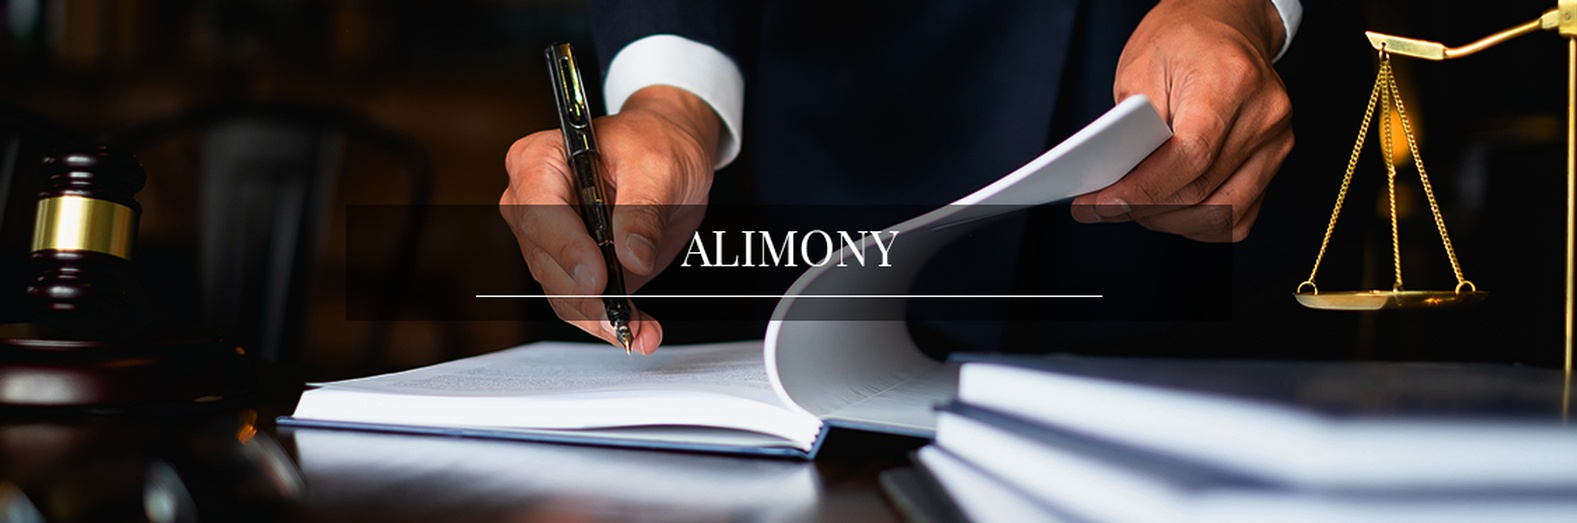 Alimony Law Firm Pembroke Pines FL